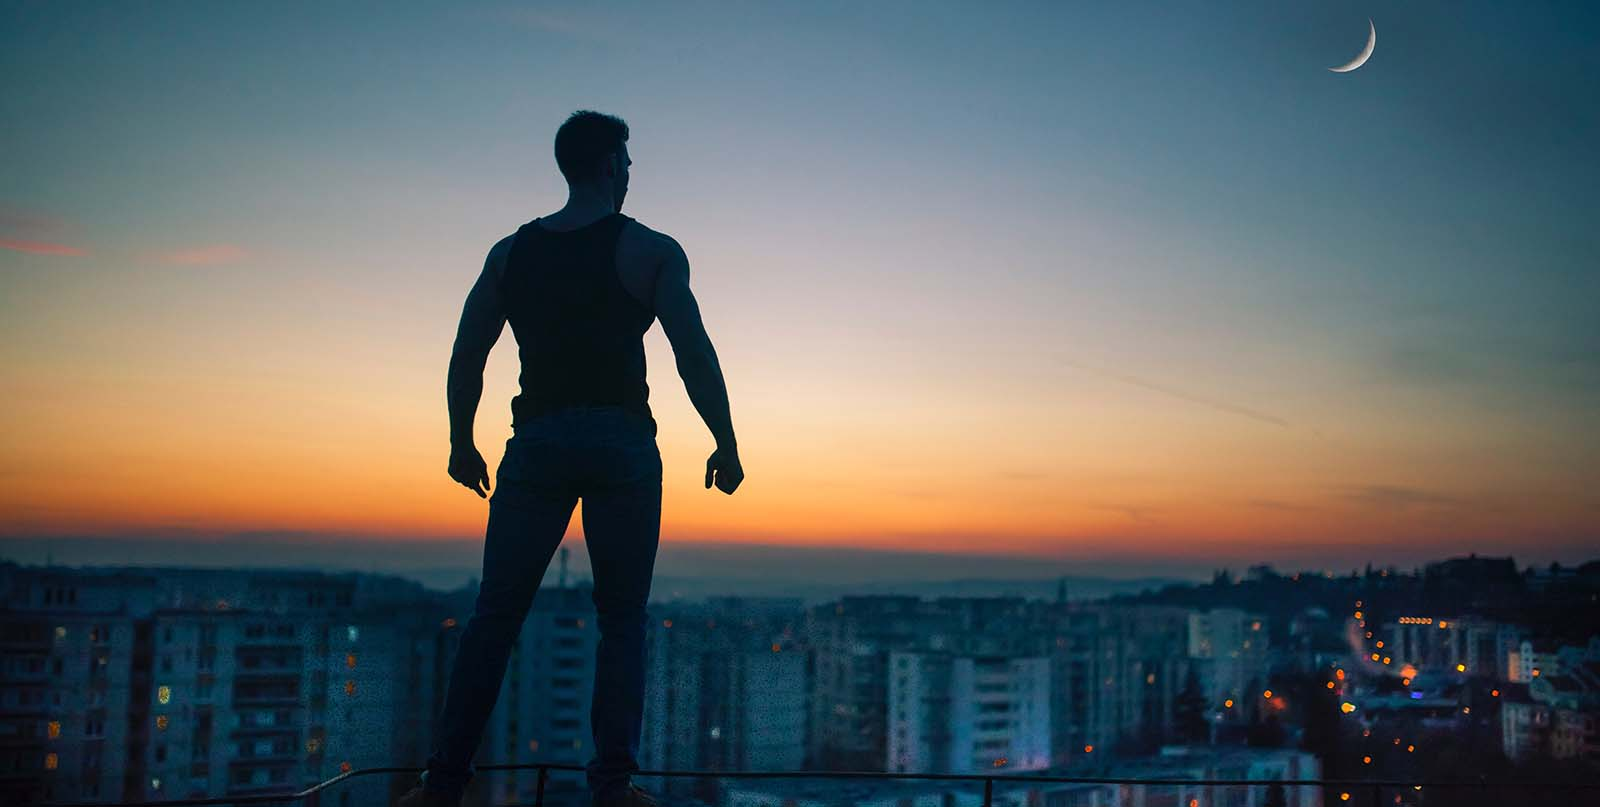 silhouette photo of man standing on peak front of high-rise buildings